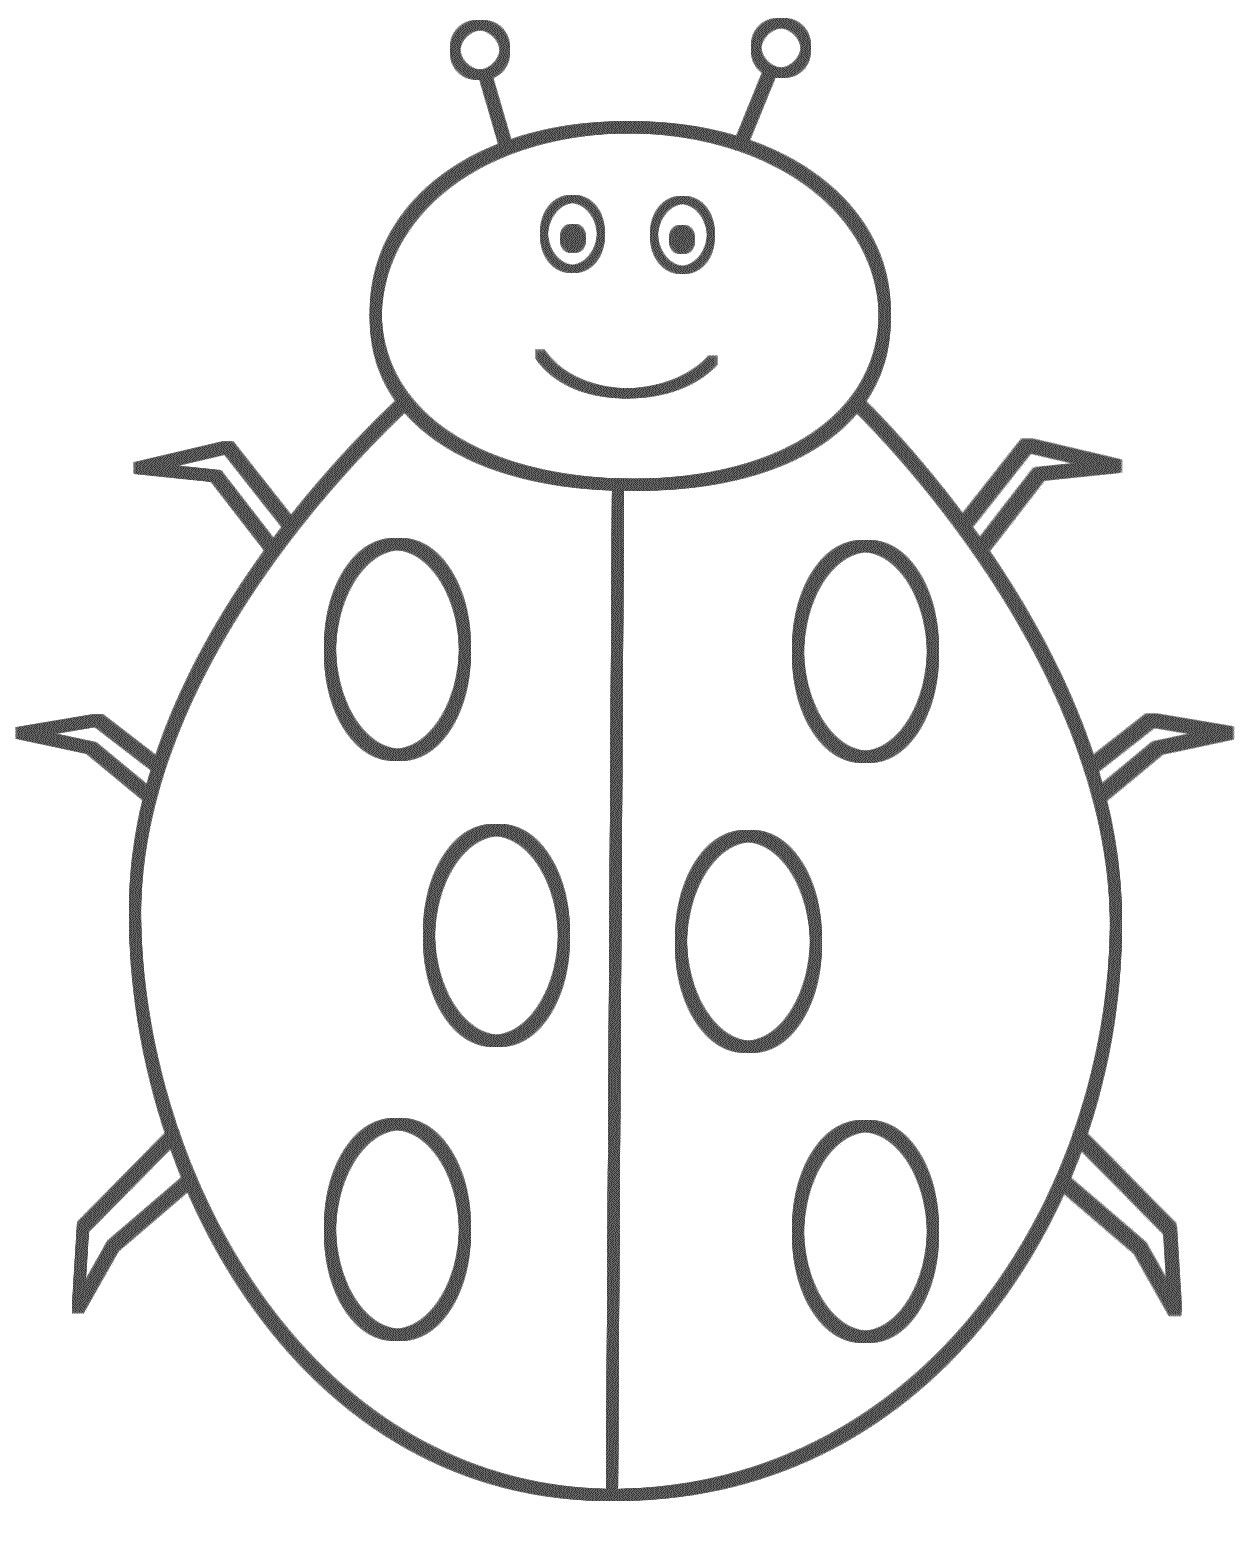 Incridible Bug Coloring Pages Ladybug Coloring Pages Animals Coloringarena From Coloring Pages Ladybug Coloring Page Bug Coloring Pages Coloring Pages For Boys